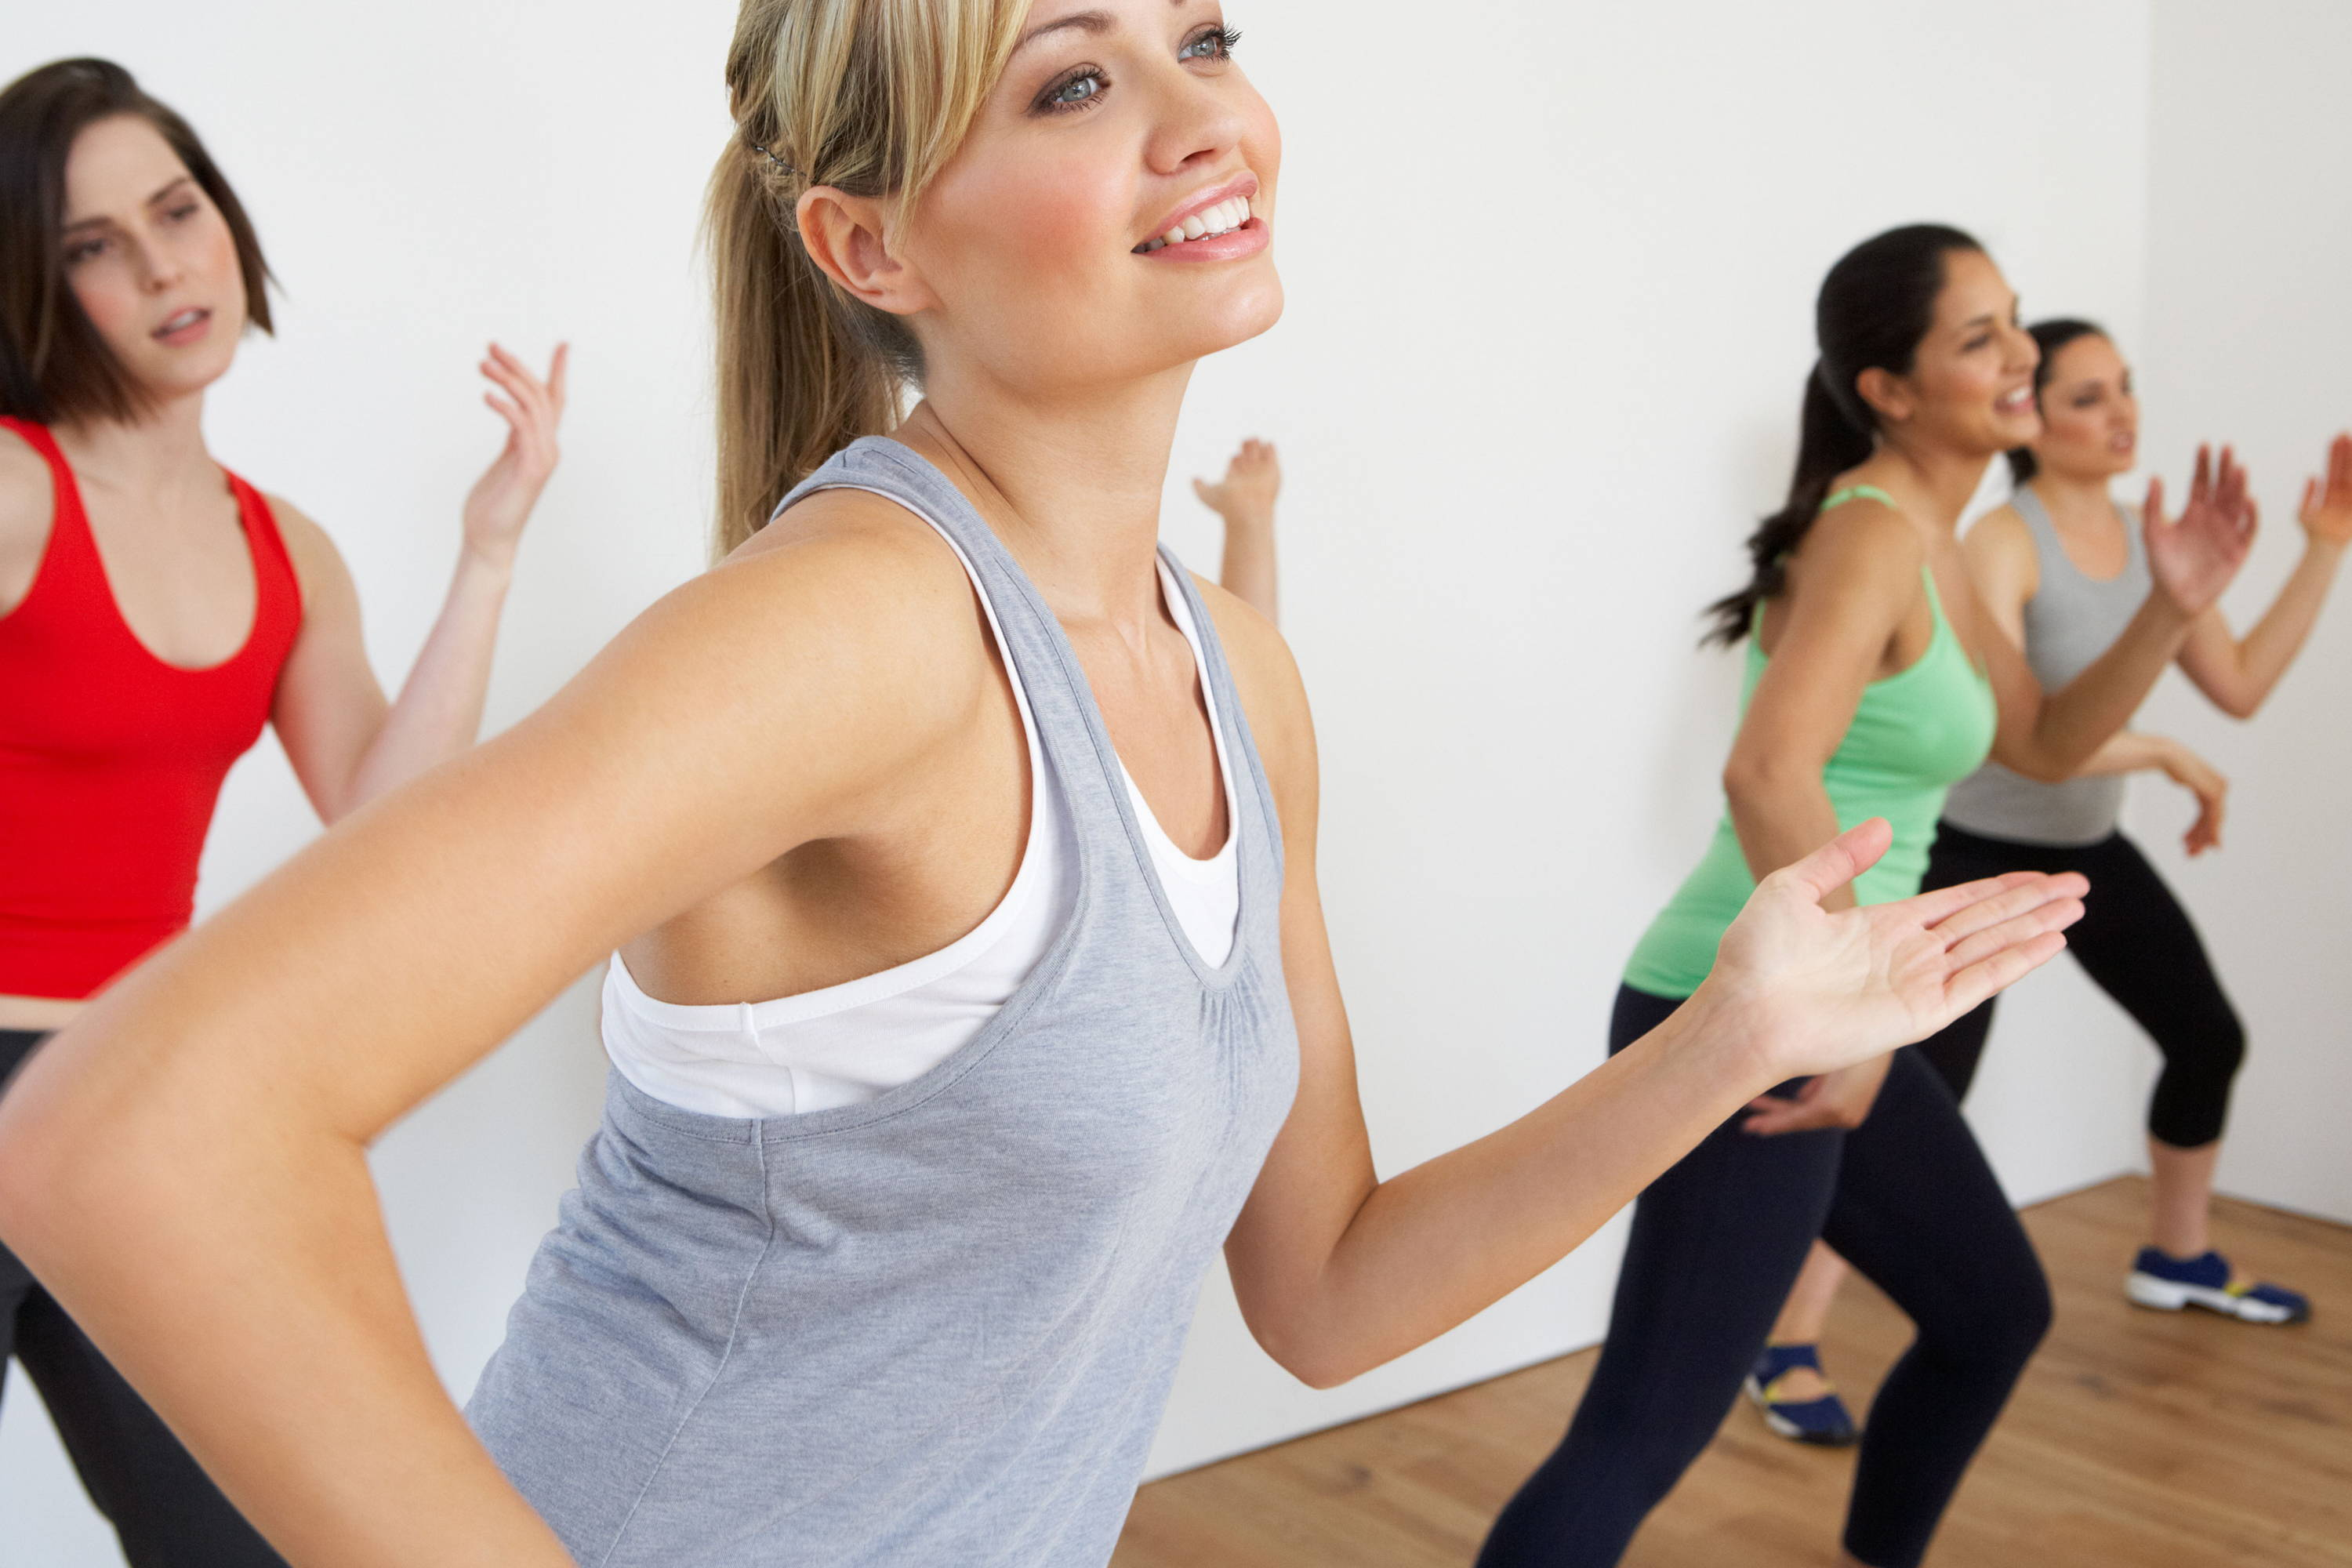 Dancing - Best Exercises for Dealing With Menopause